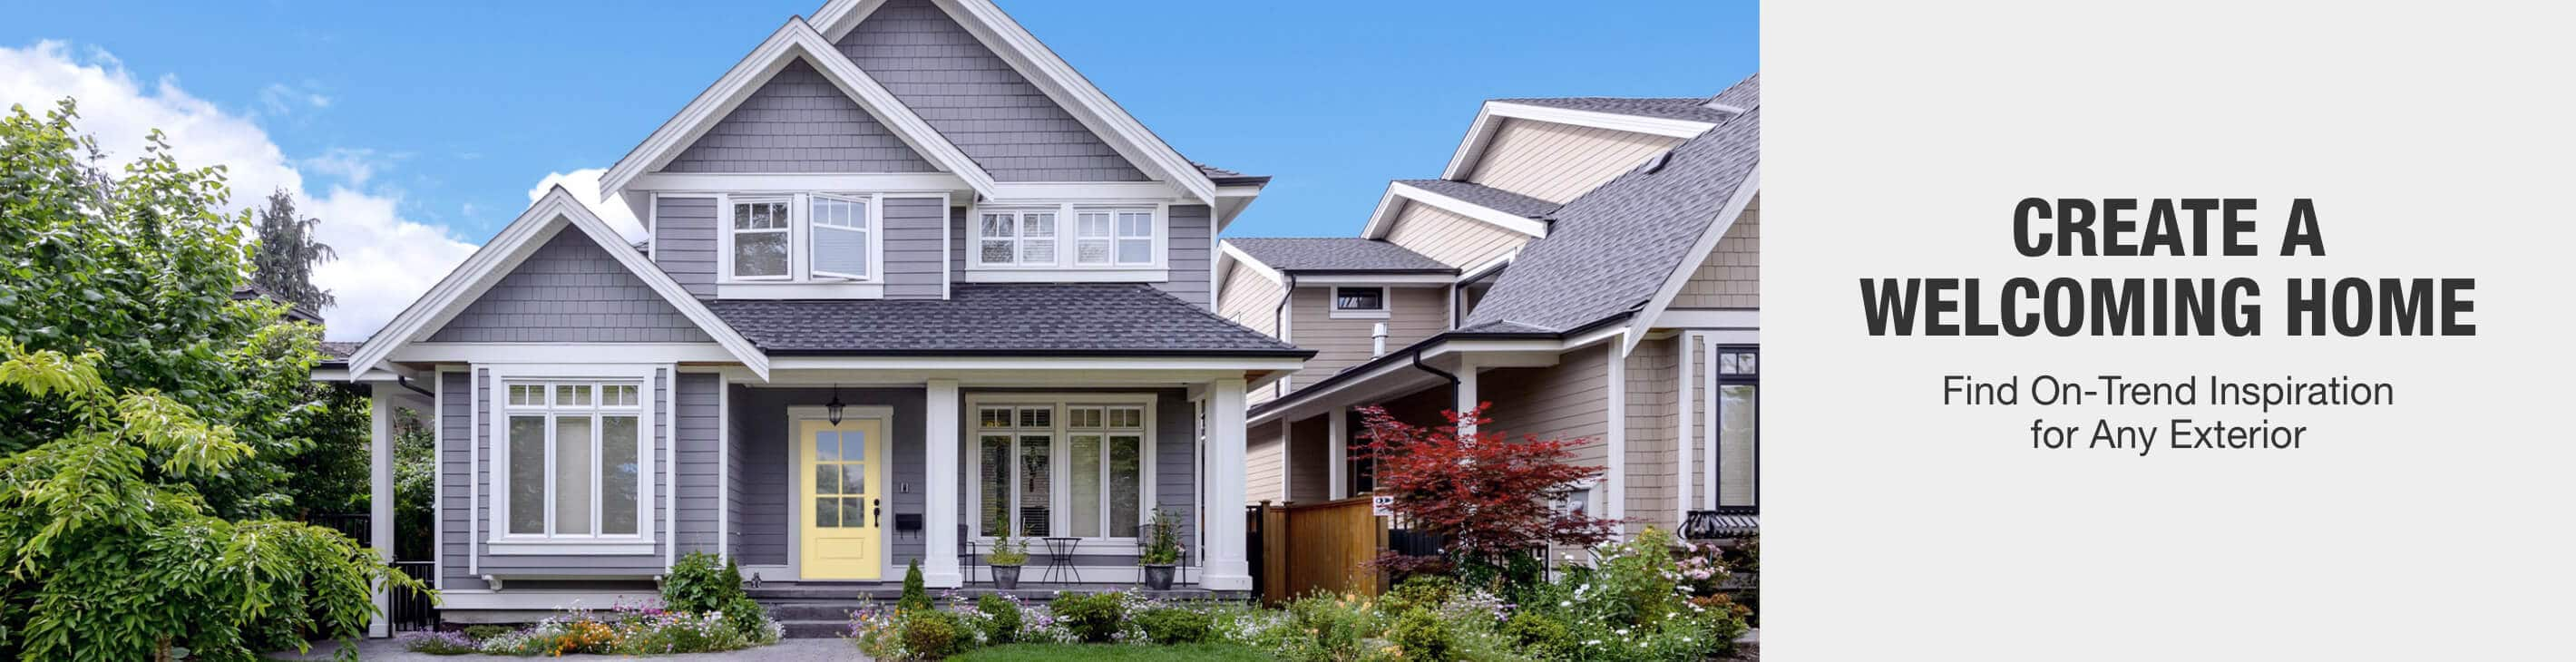 CREATE A WELCOMING HOME - Find the Right Architectural Inspiration for Any Exterior > Get Started